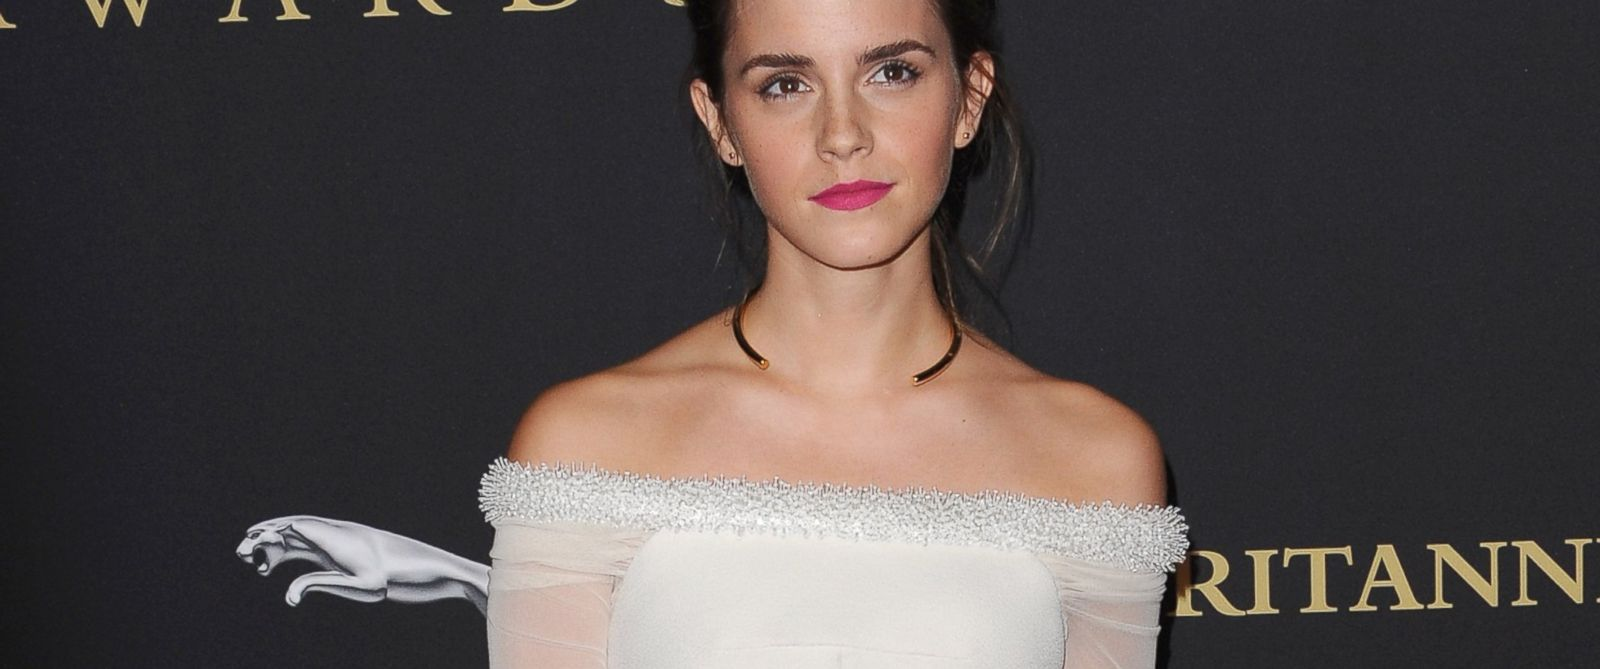 PHOTO: Actress Emma Watson arrives at the BAFTA Los Angeles Jaguar Britannia Awards at The Beverly Hilton Hotel, Oct. 30, 2014, in Beverly Hills, Calif.